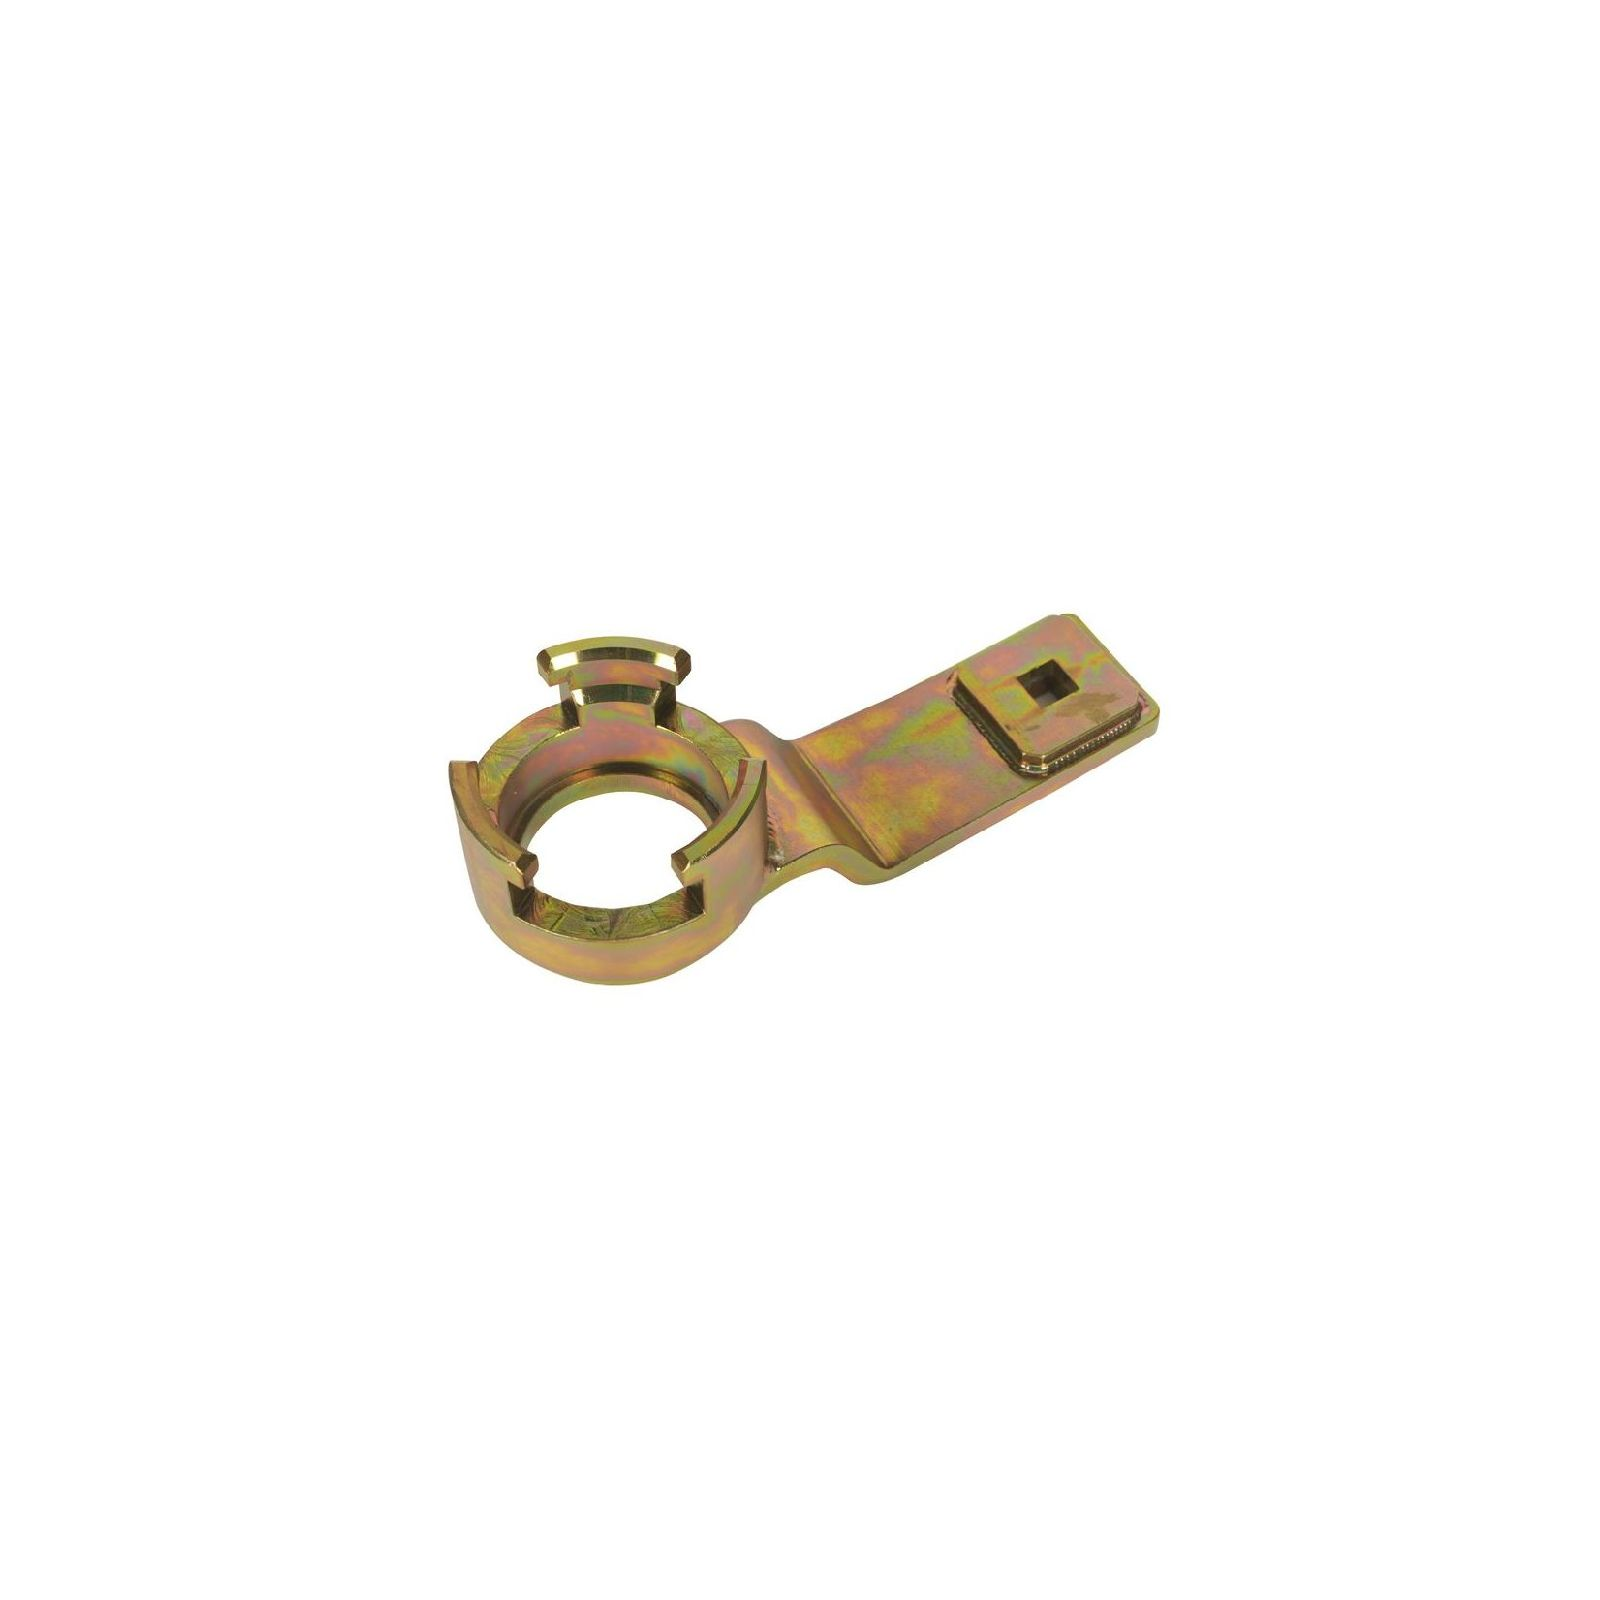 Sealey Crank Pulley Holding Tool